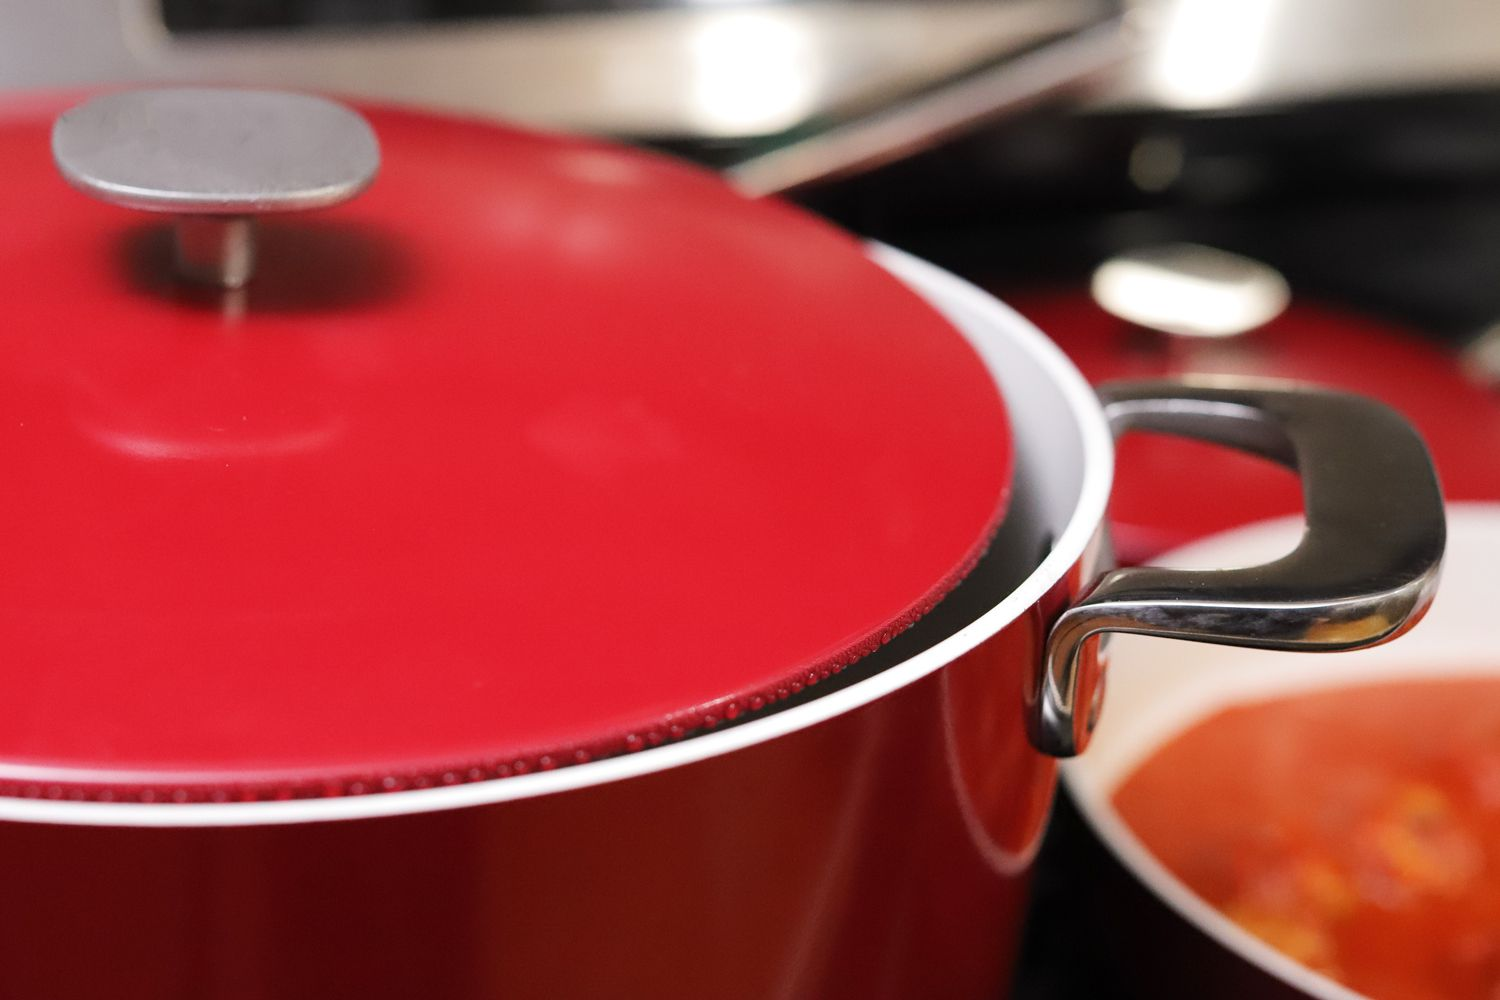 equal-parts-cookware-lid